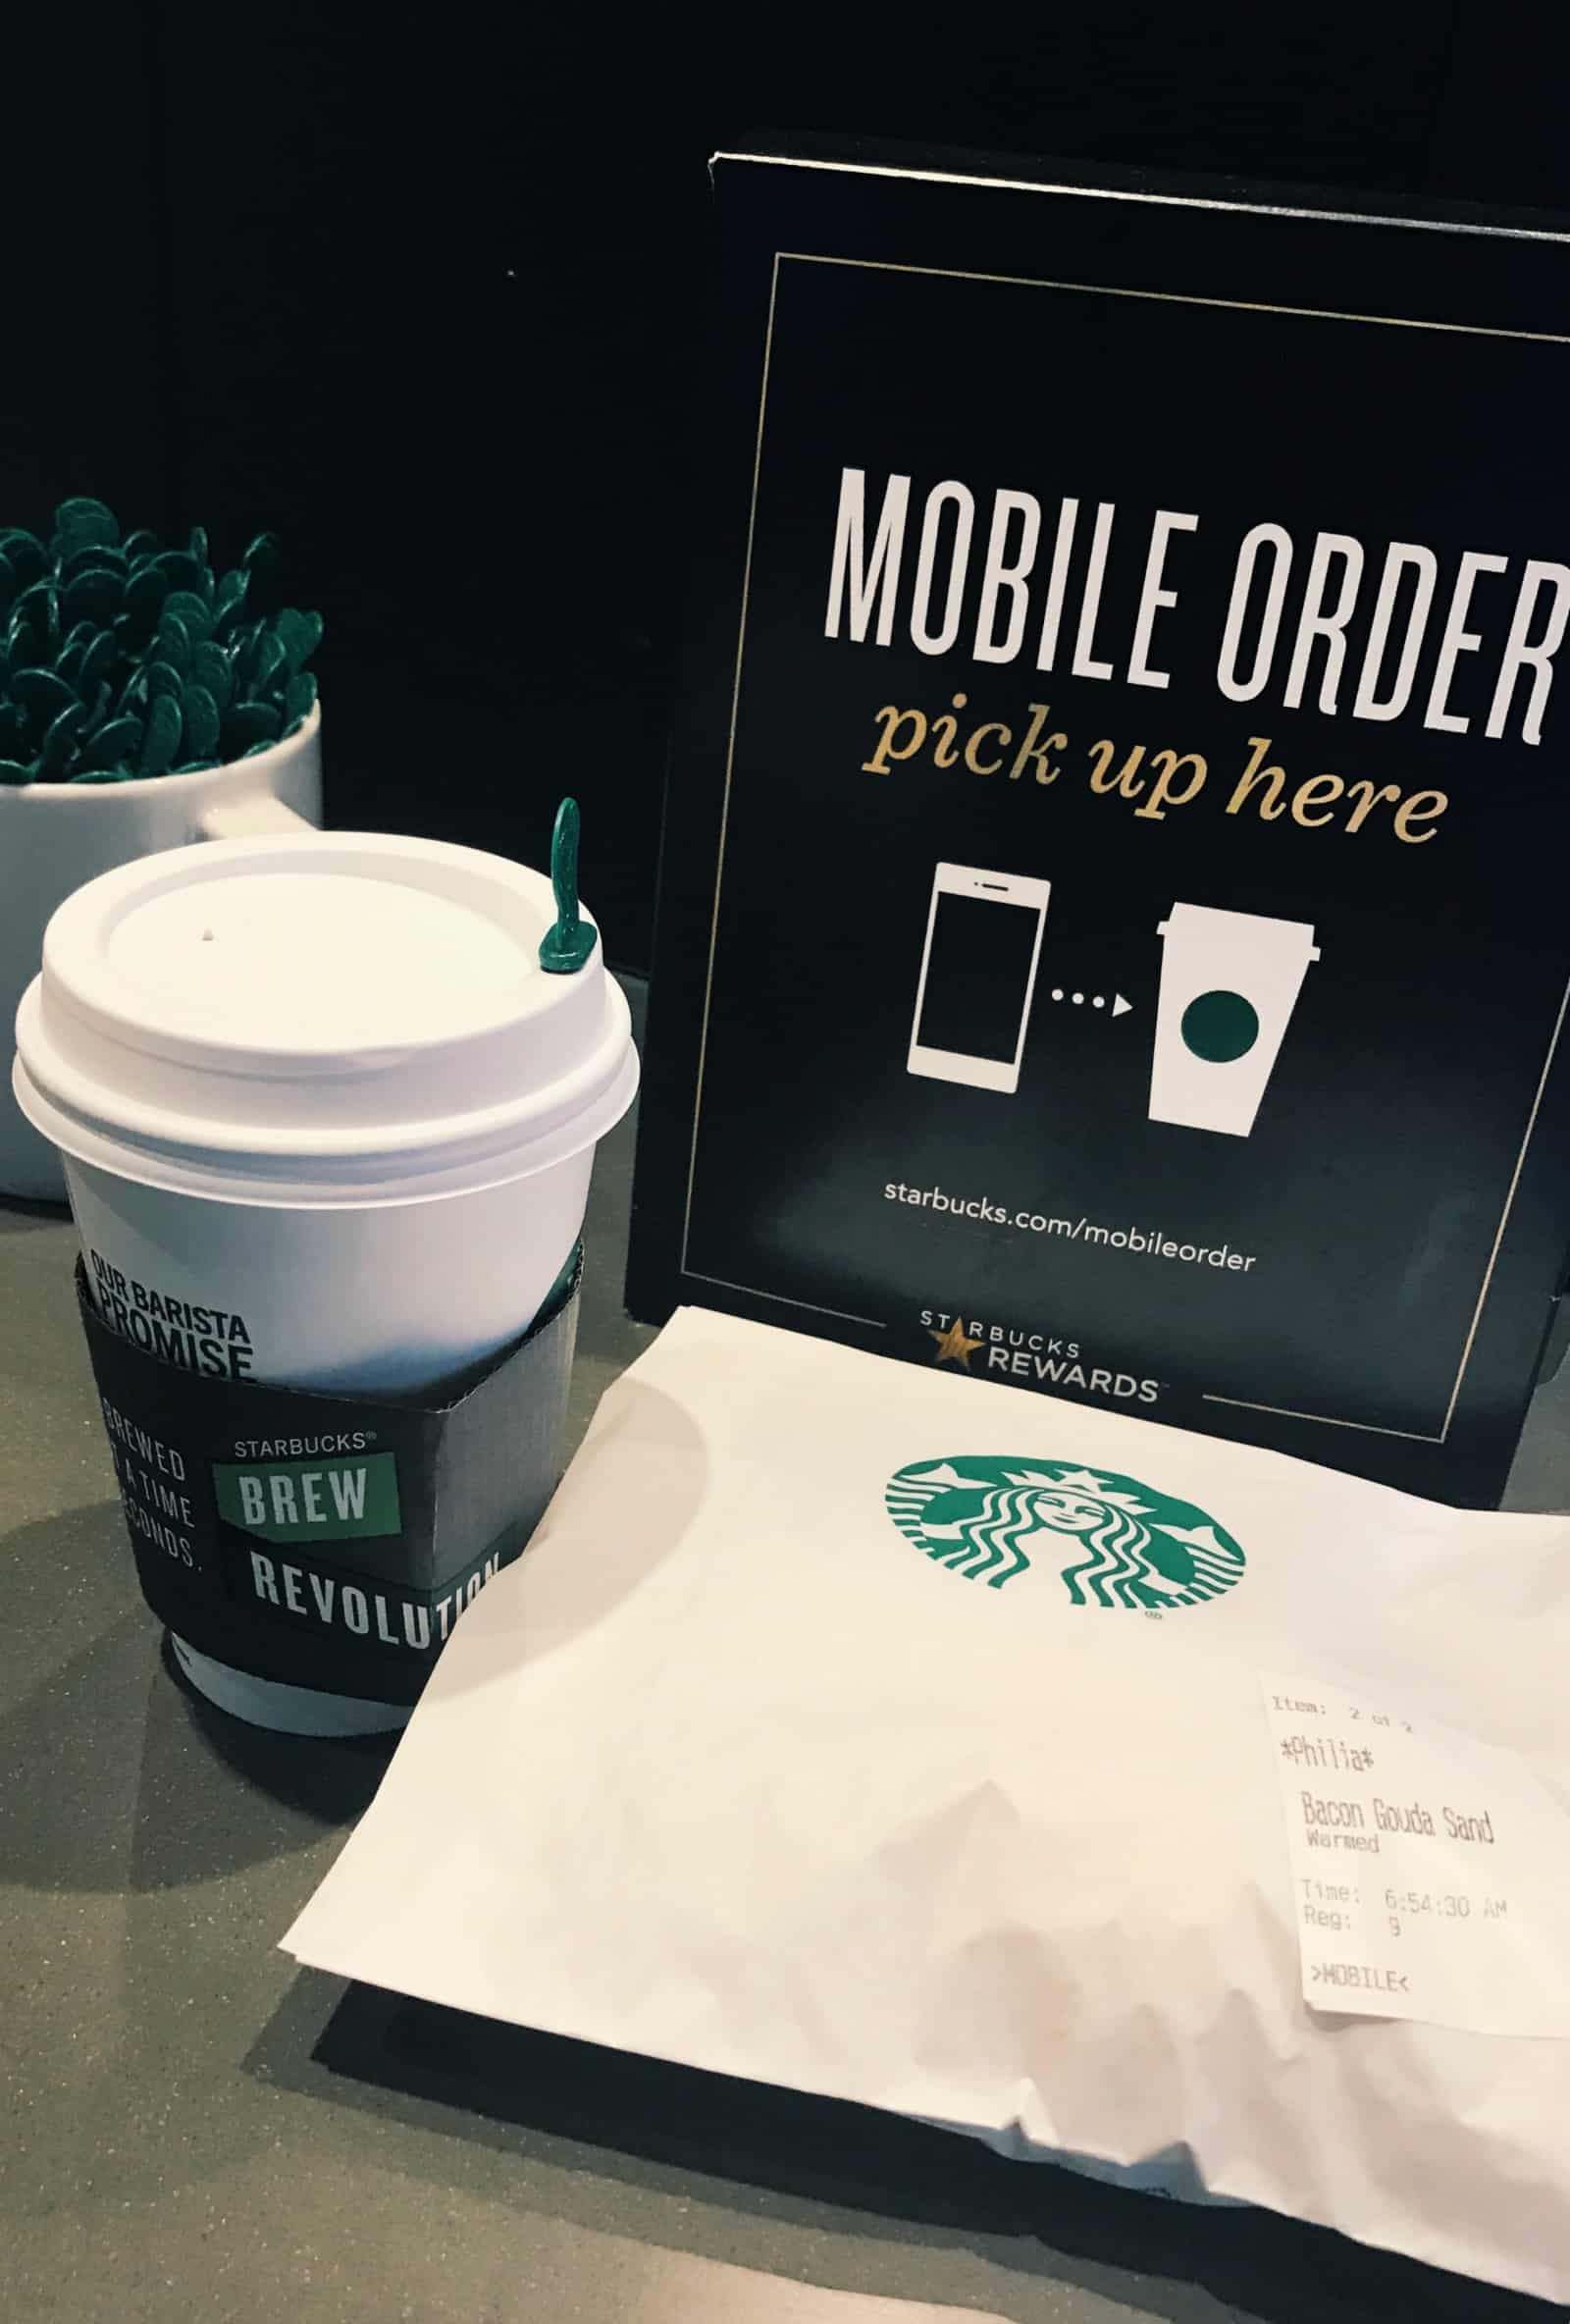 THe most convenient Starbucks mobile order